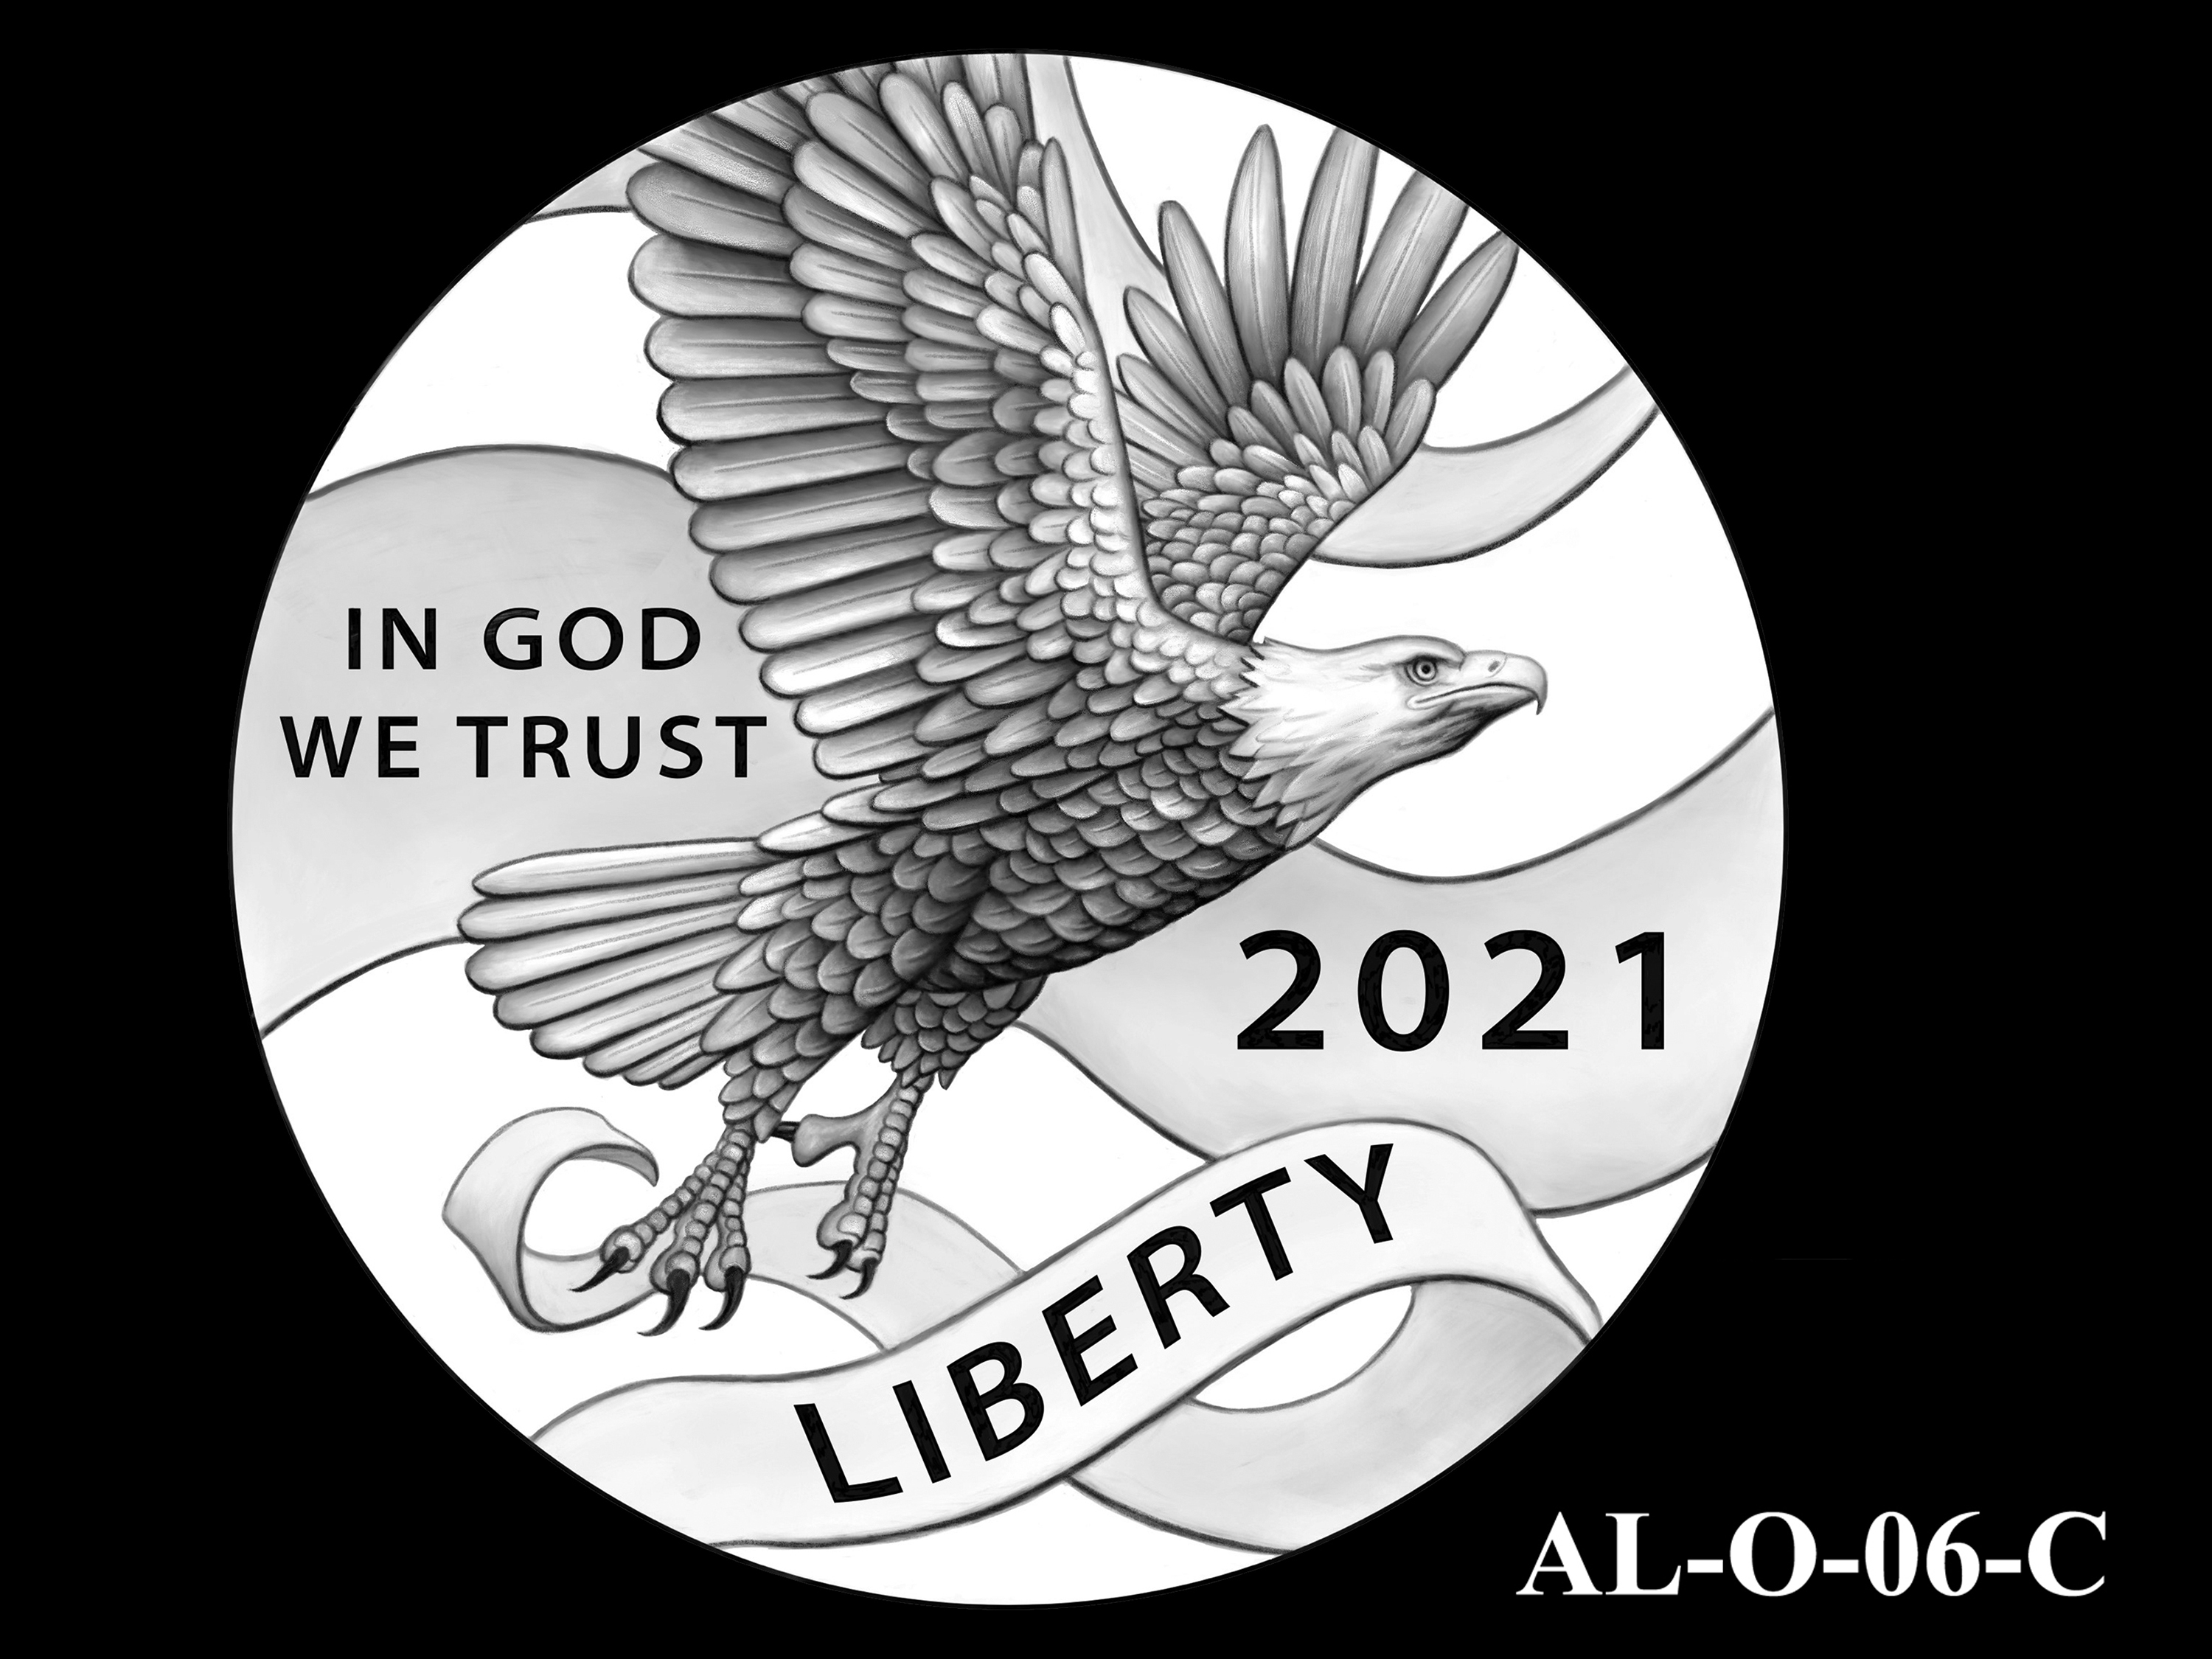 AL-O-06-C -- 2021 American Liberty Gold Coin and Silver Medal Program - Obverse